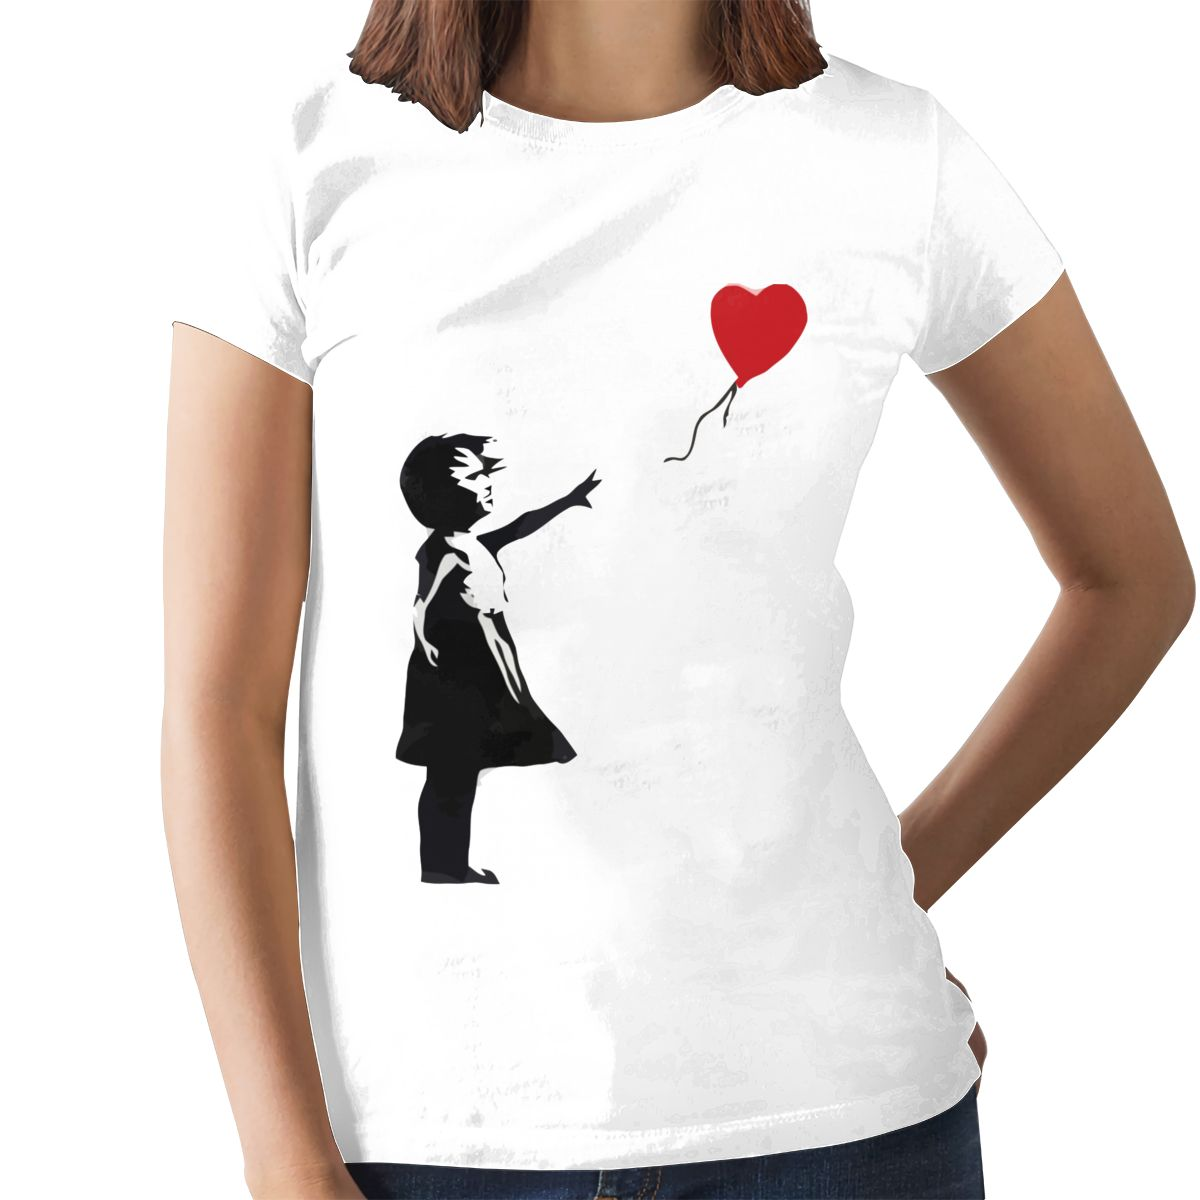 Heart Love T-Shirt Banksy Girl With Balloon T Shirt Trendy Purple Women tshirt Cotton Graphic Ladies Tee Shirt 8